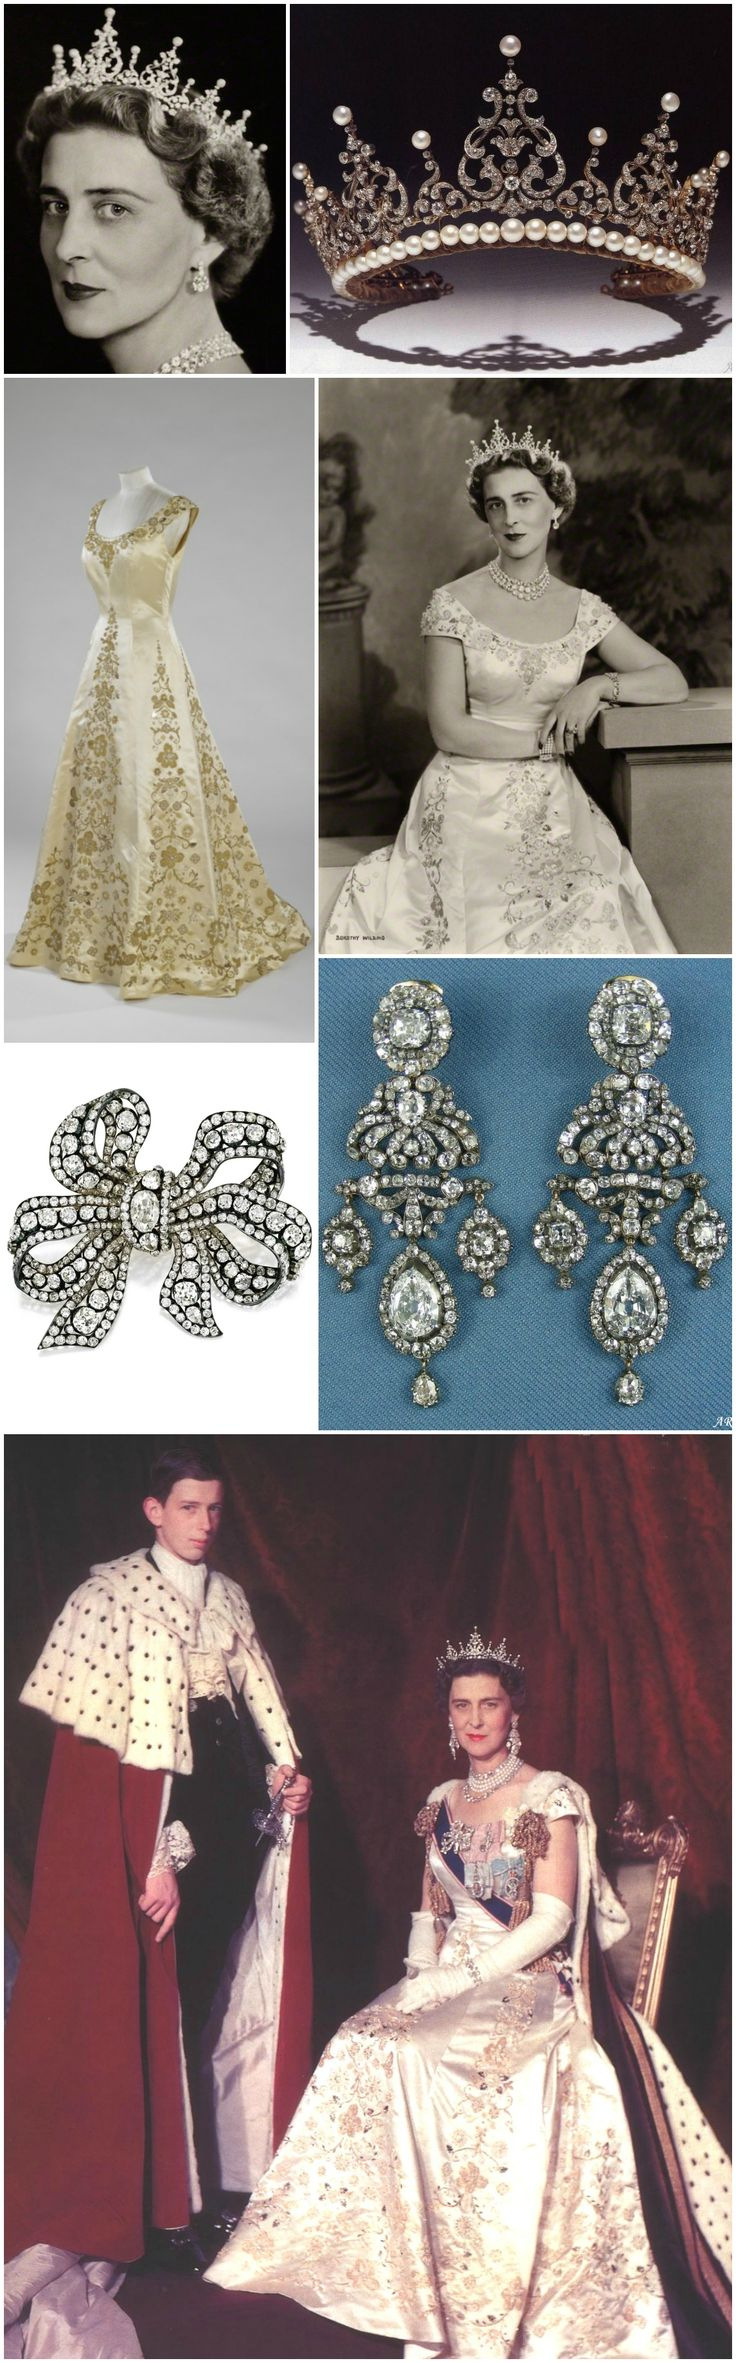 Like other members of the Royal family, H.R.H. Princess Marina, the Duchess of Kent, wore a Hartnell design—a gown of white satin with panels of embroidery—for the 1953 coronation. Her accessories included the Kent Festoon Tiara, a diamond bow brooch, and a large pair of fabulous girandole earrings, dating to the 1900s, 1850, and the 1770s, respectively (see color portrait). Dorothy Wilding photographed her wearing the same Hartnell dress and tiara in 1953 (see accompanying B&W images).